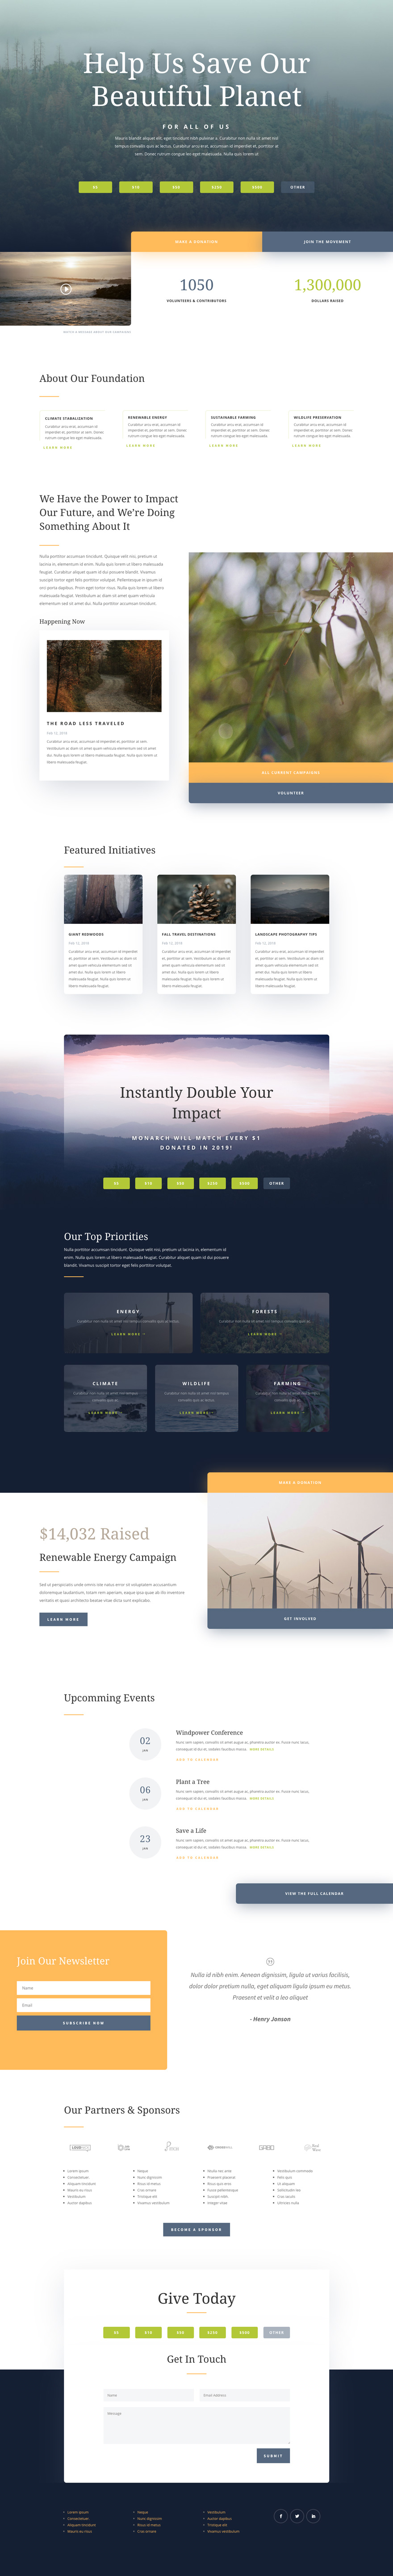 environmental nonprofit layout